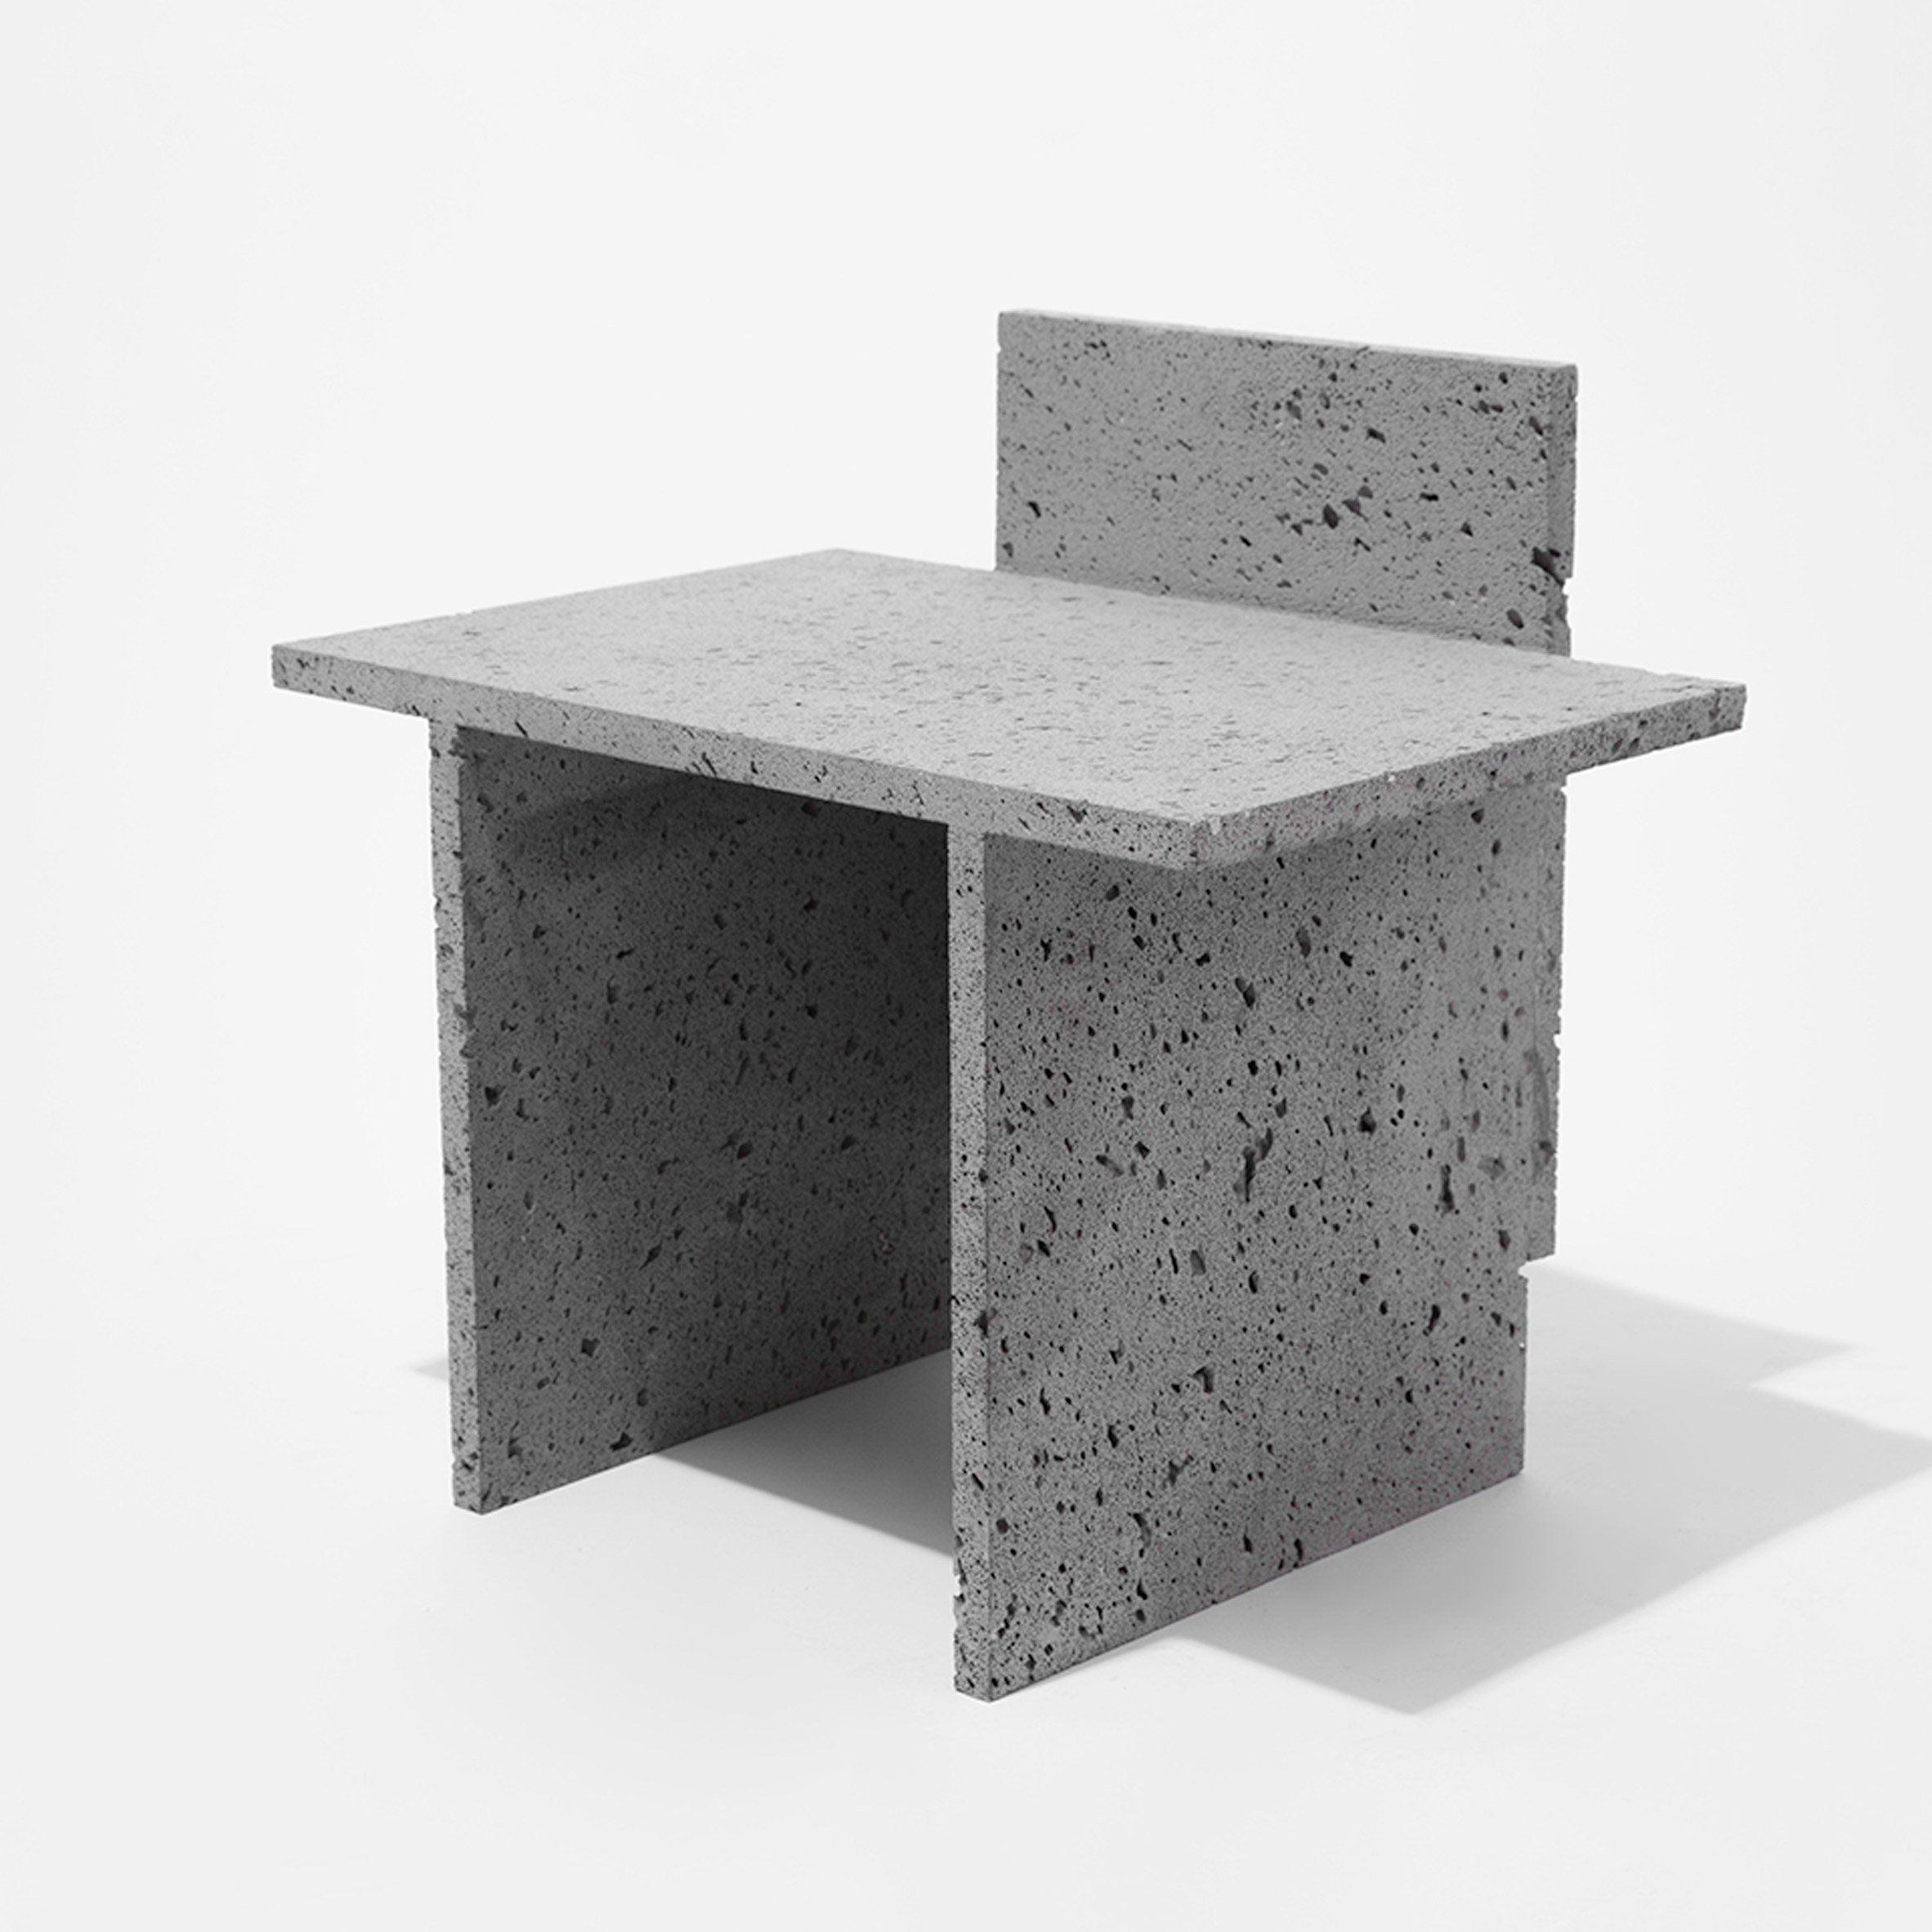 Brutalist Furniture Features In Pl Vv Collection By Pldo And  # Muebles Eguiluz